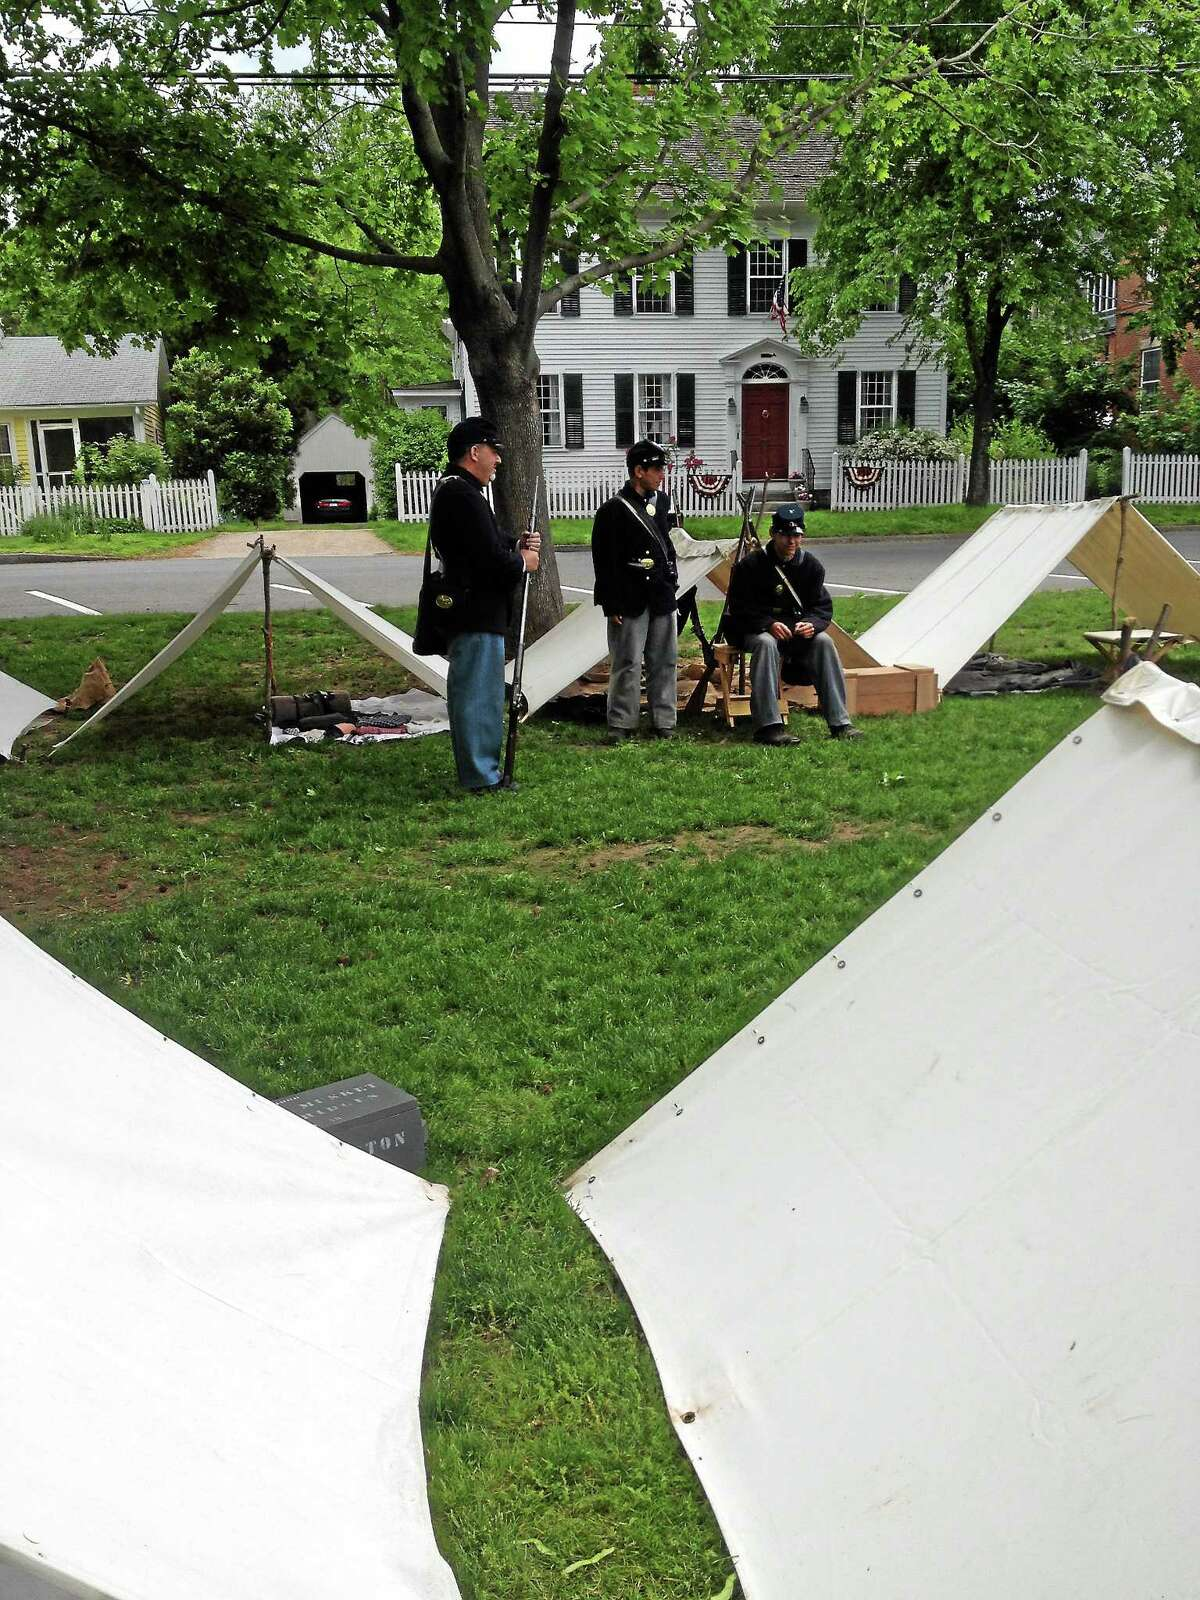 Civil War re-enactors from Company F Fourteenth Connecticut Volunteer Infantry sit at the encampment on the Guilford Green. Kristin Stoller - New Haven Register